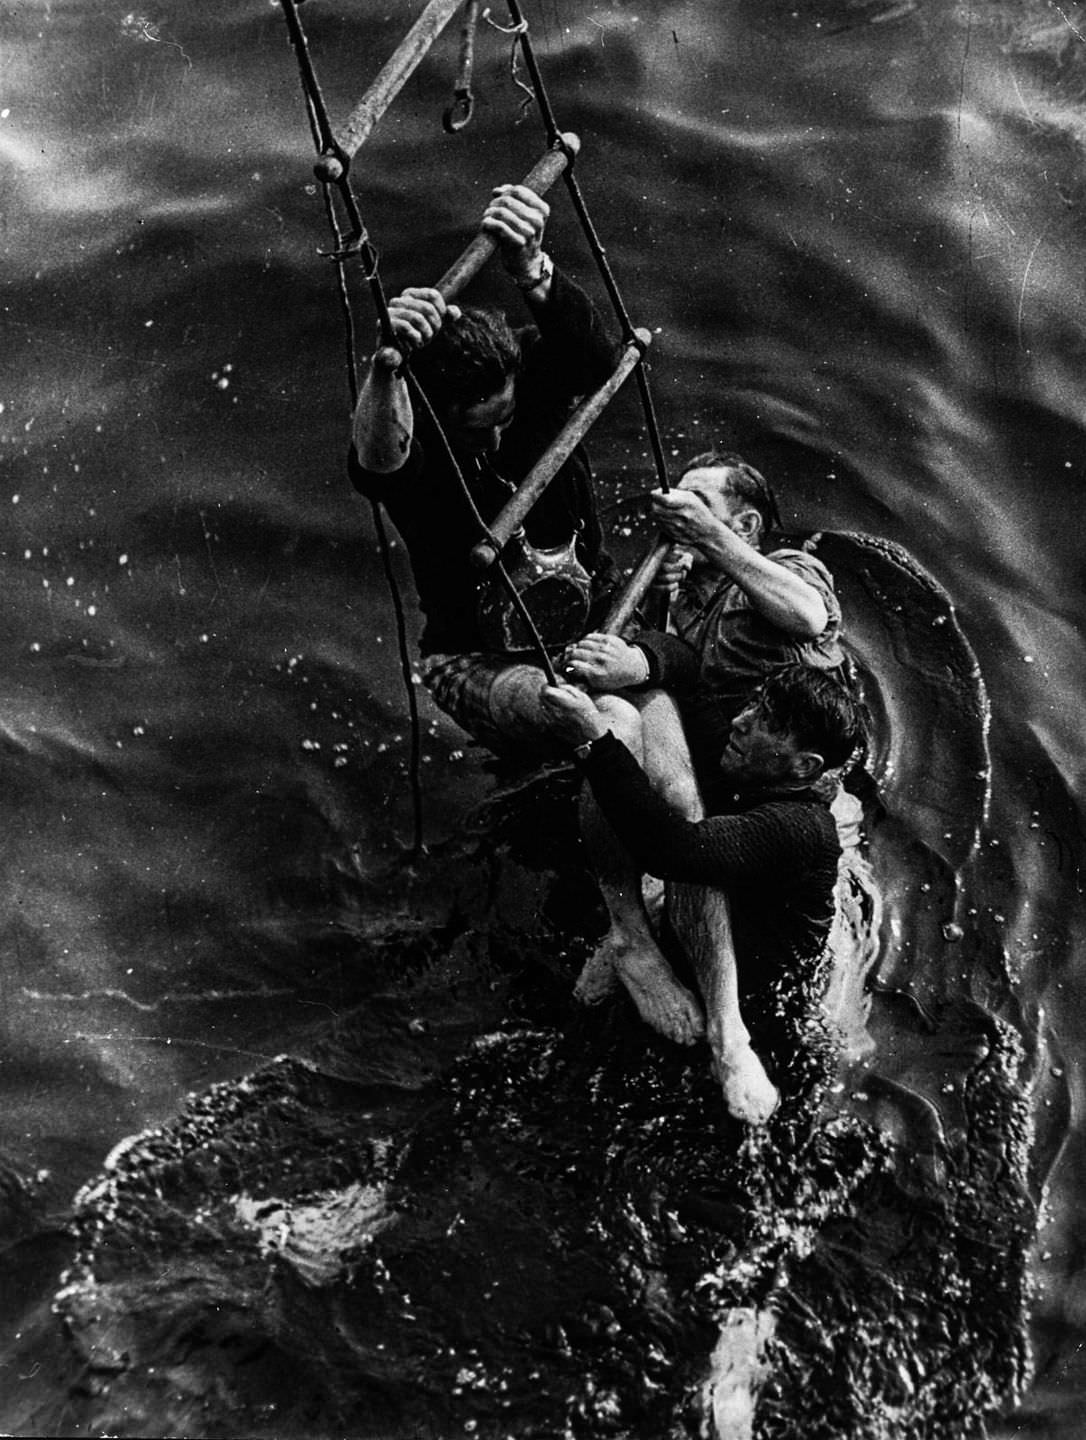 Allied soldiers climb aboard a ship during the evacuation of Dunkirk